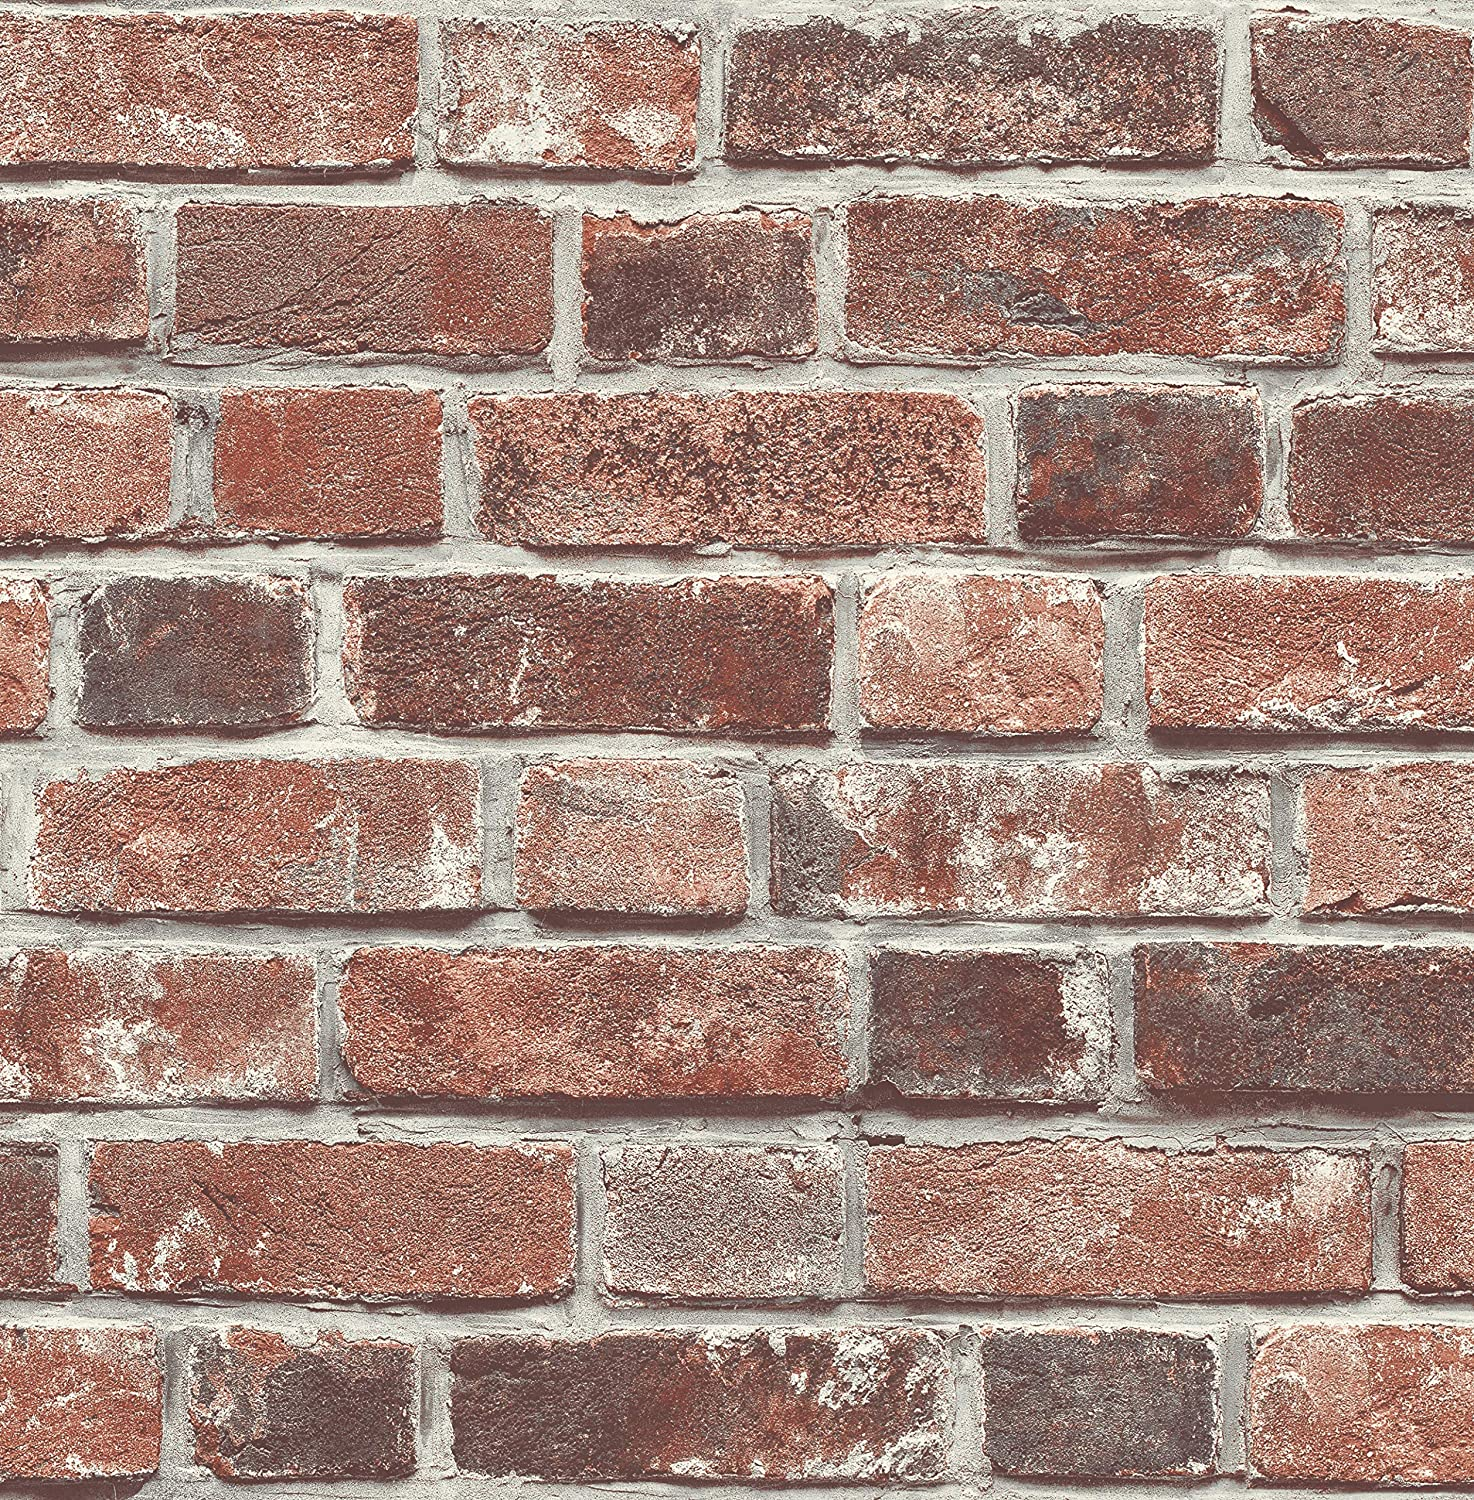 - Brick Peel And Stick (#2838932) - HD Wallpaper & Backgrounds Download